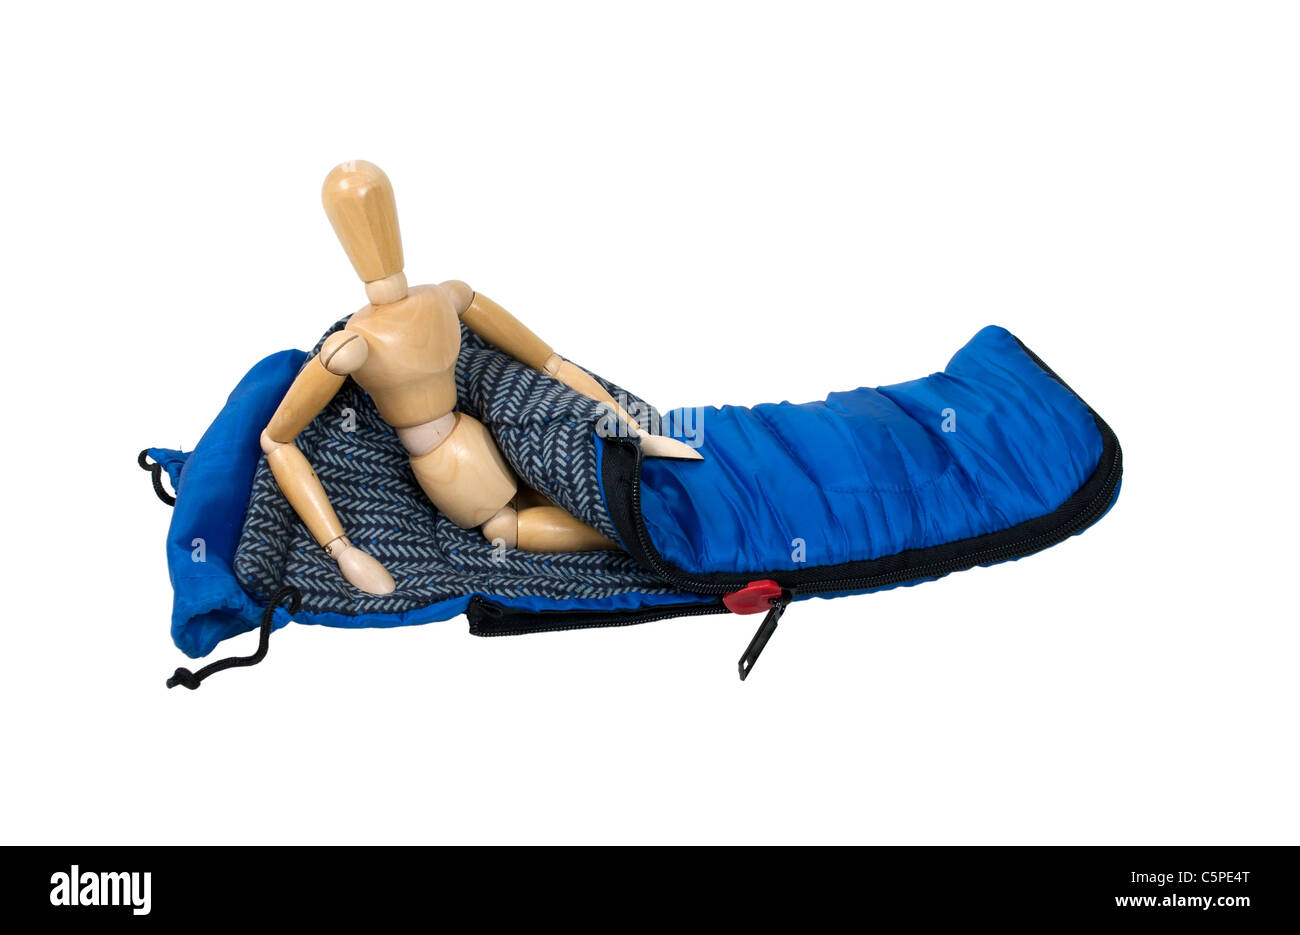 4f301f3fea1 Model sitting up in a sleeping bag used to keep warm on camping trips -  path included